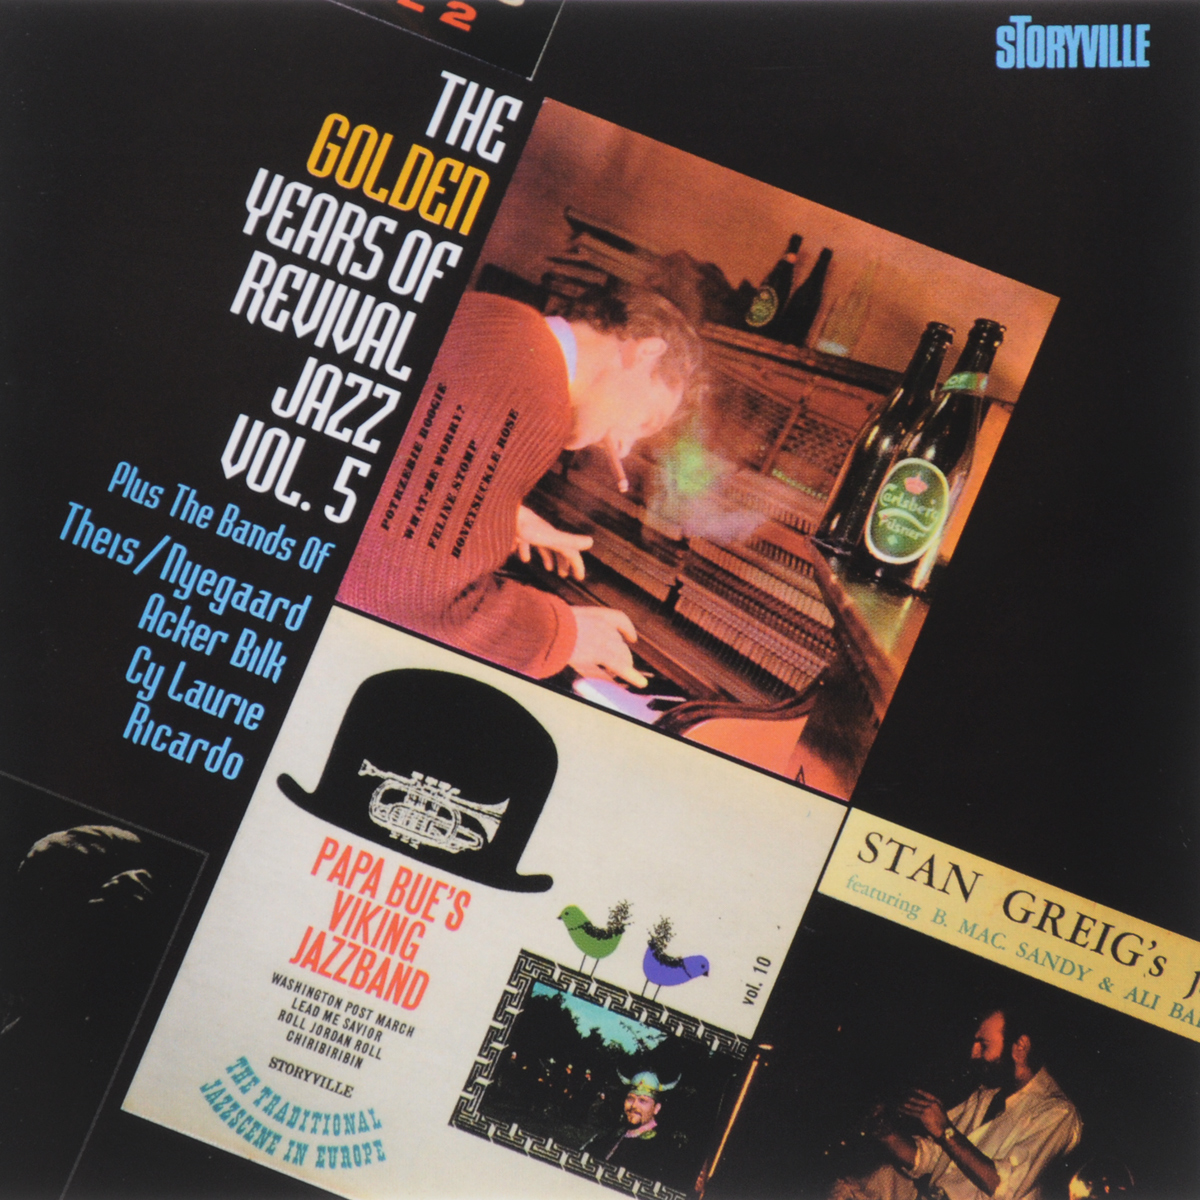 Papa Bue's Viking Jazz Band,Sandy Brown's Jazz Band,Johnny Parker Trio,Theis-Nyegaard Jazz Band,Акер Билк,His Paramount Jazz Band,Ricardo's Jazzmen,Cy Laurie's New Orleans Septet The Golden Years Of Revival Jazz. Vol.5 цена и фото